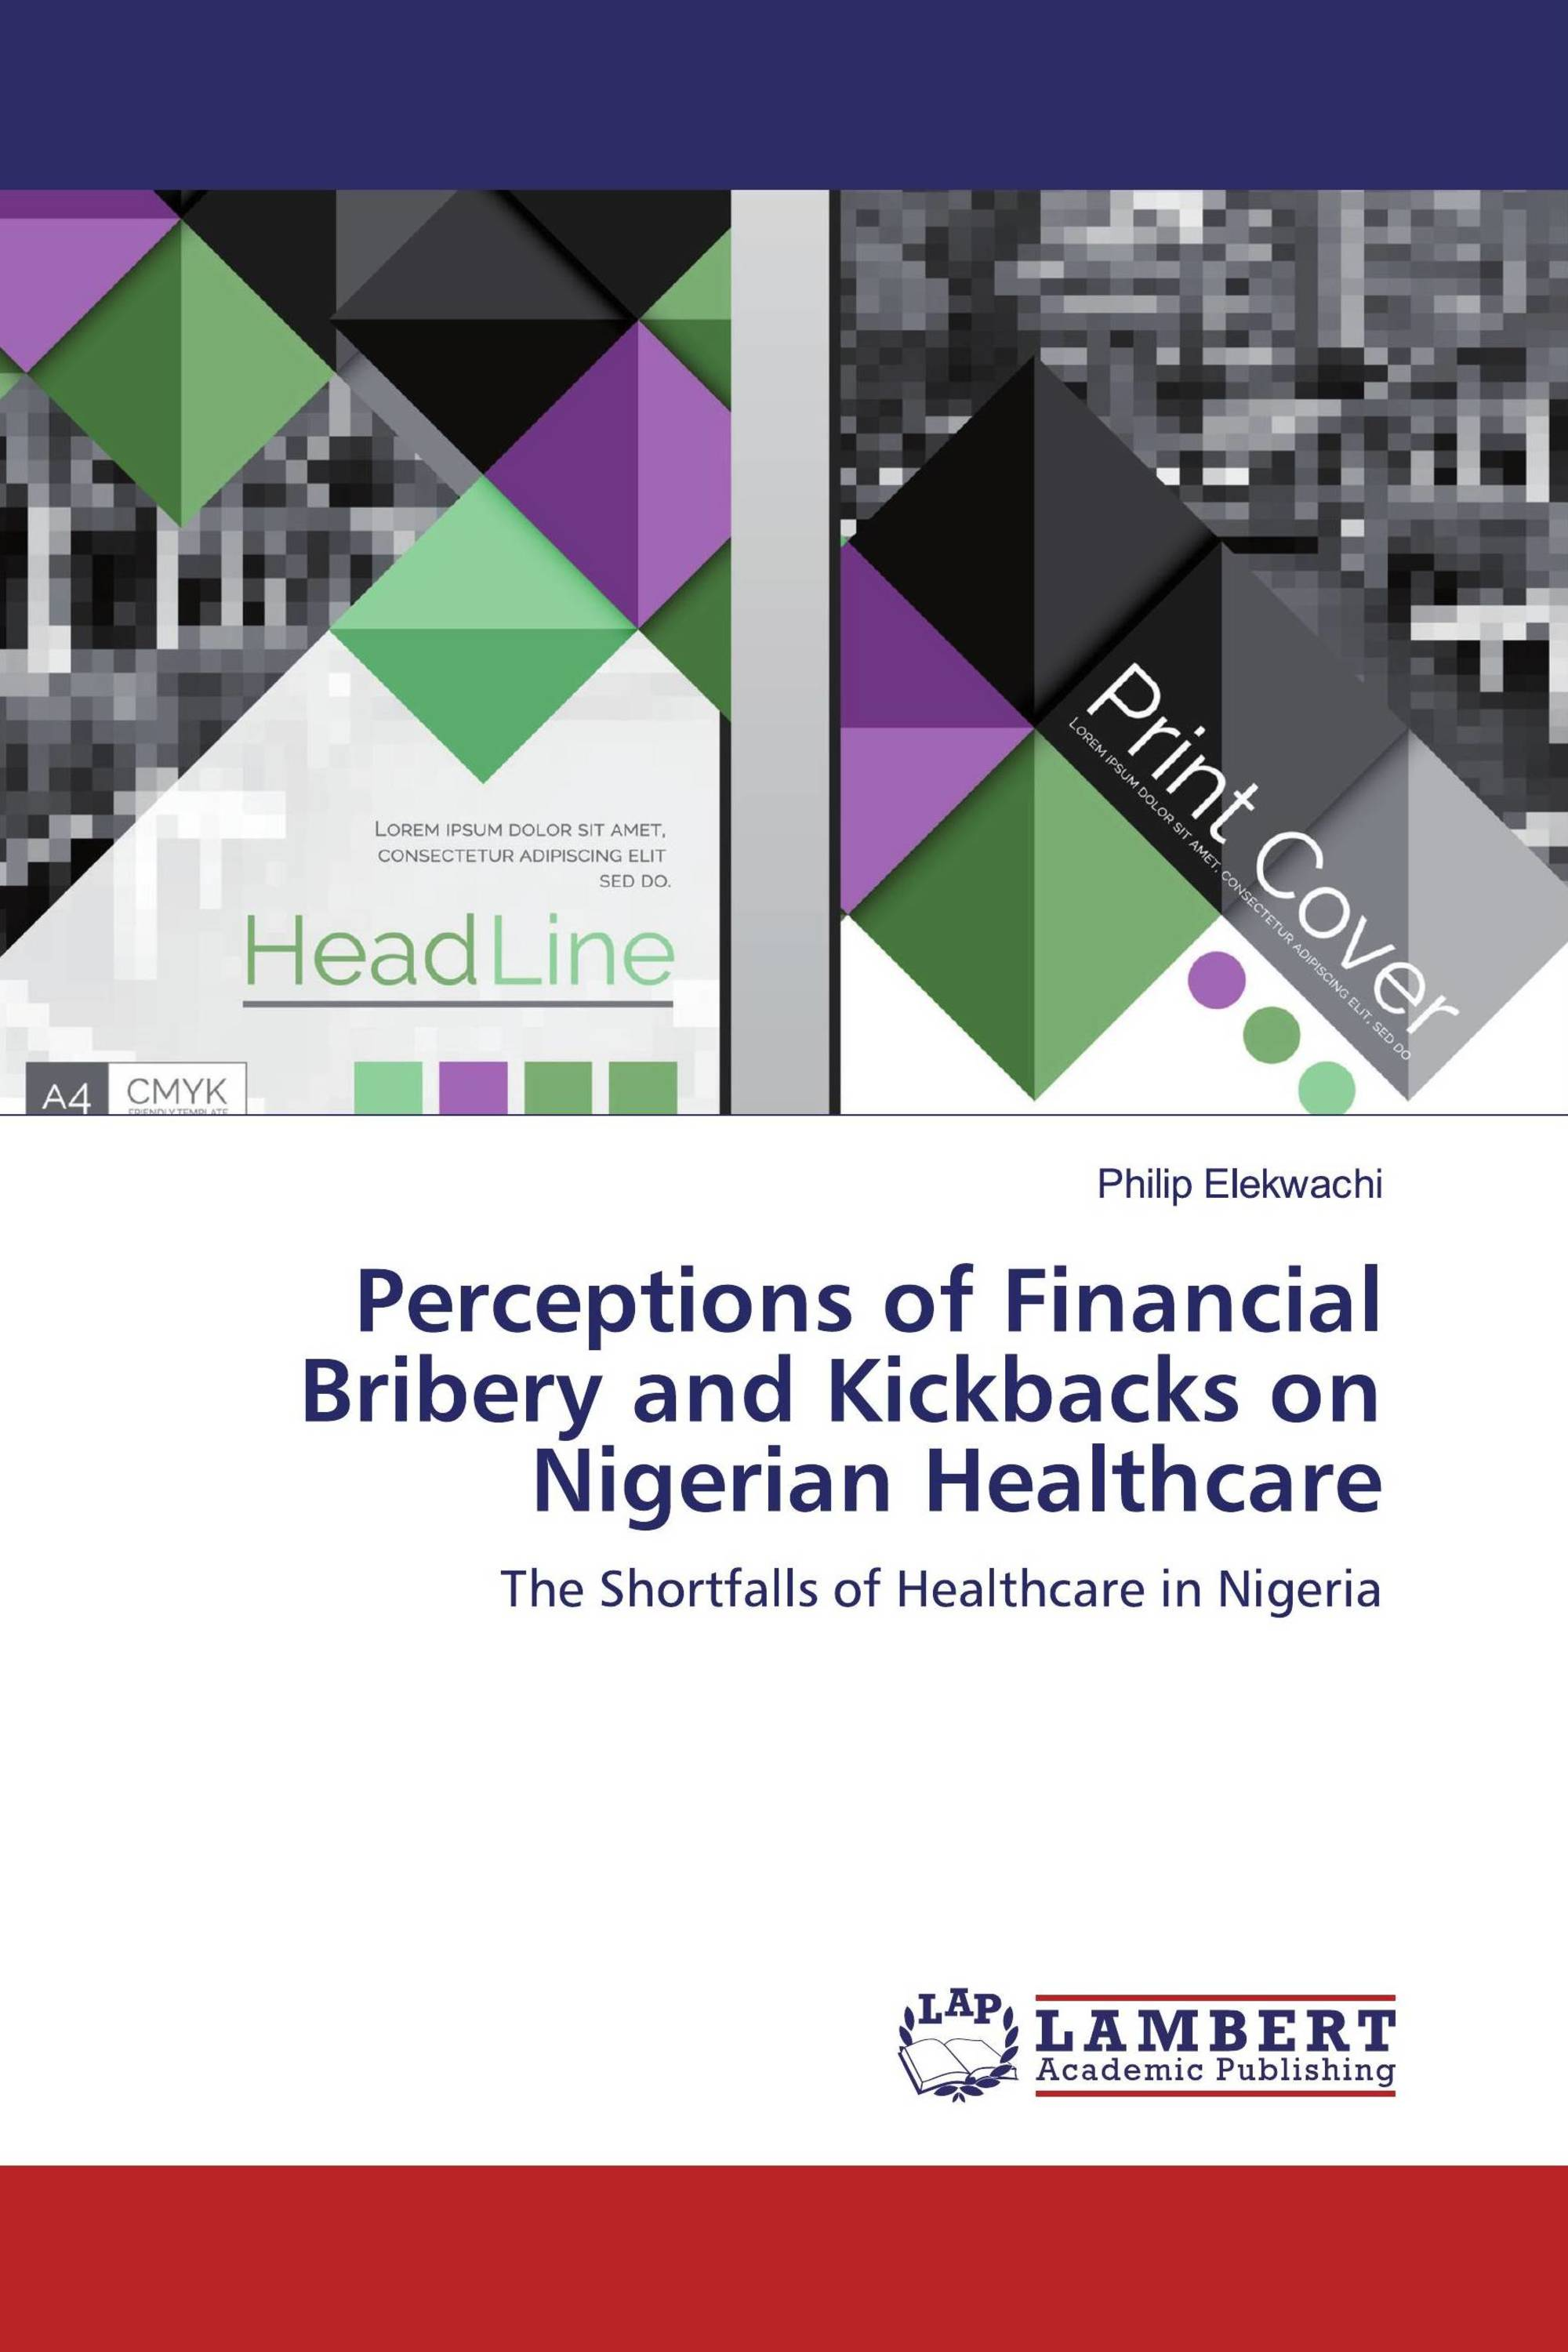 Perceptions of Financial Bribery and Kickbacks on Nigerian Healthcare